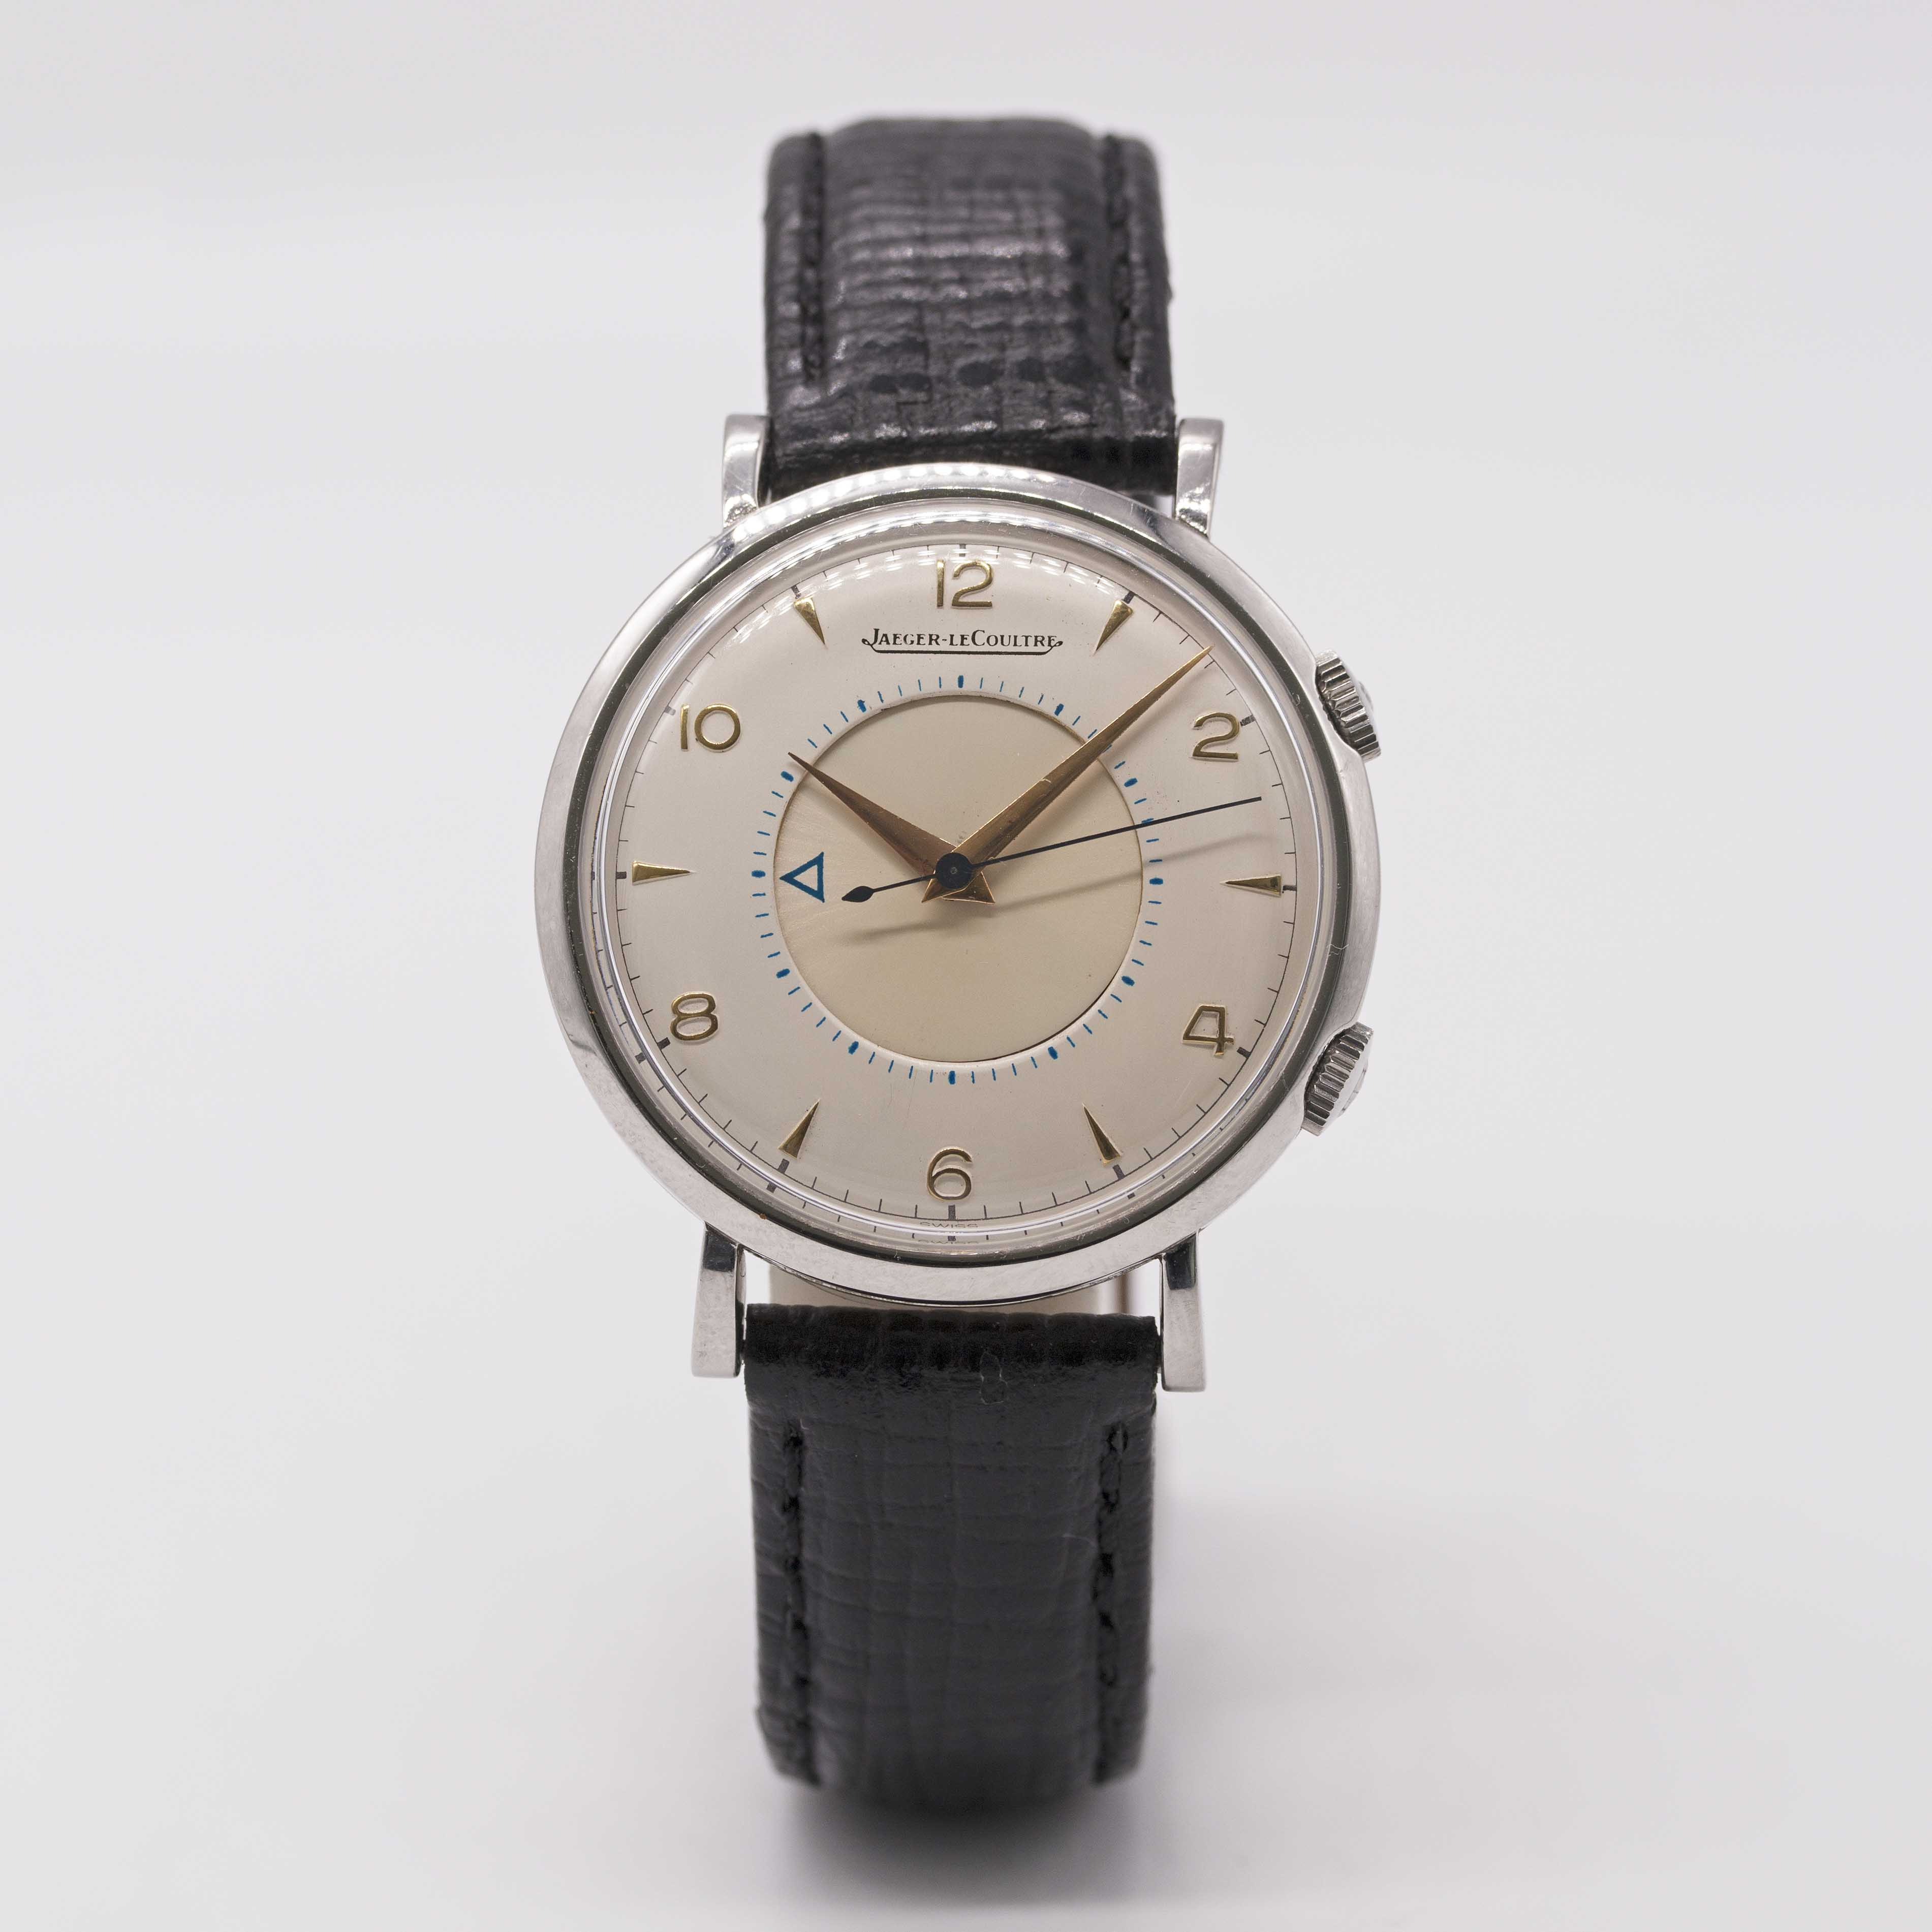 Lot 7 - A GENTLEMAN'S STAINLESS STEEL JAEGER LECOULTRE MEMOVOX ALARM WRIST WATCH CIRCA 1960, WITH REFINISHED